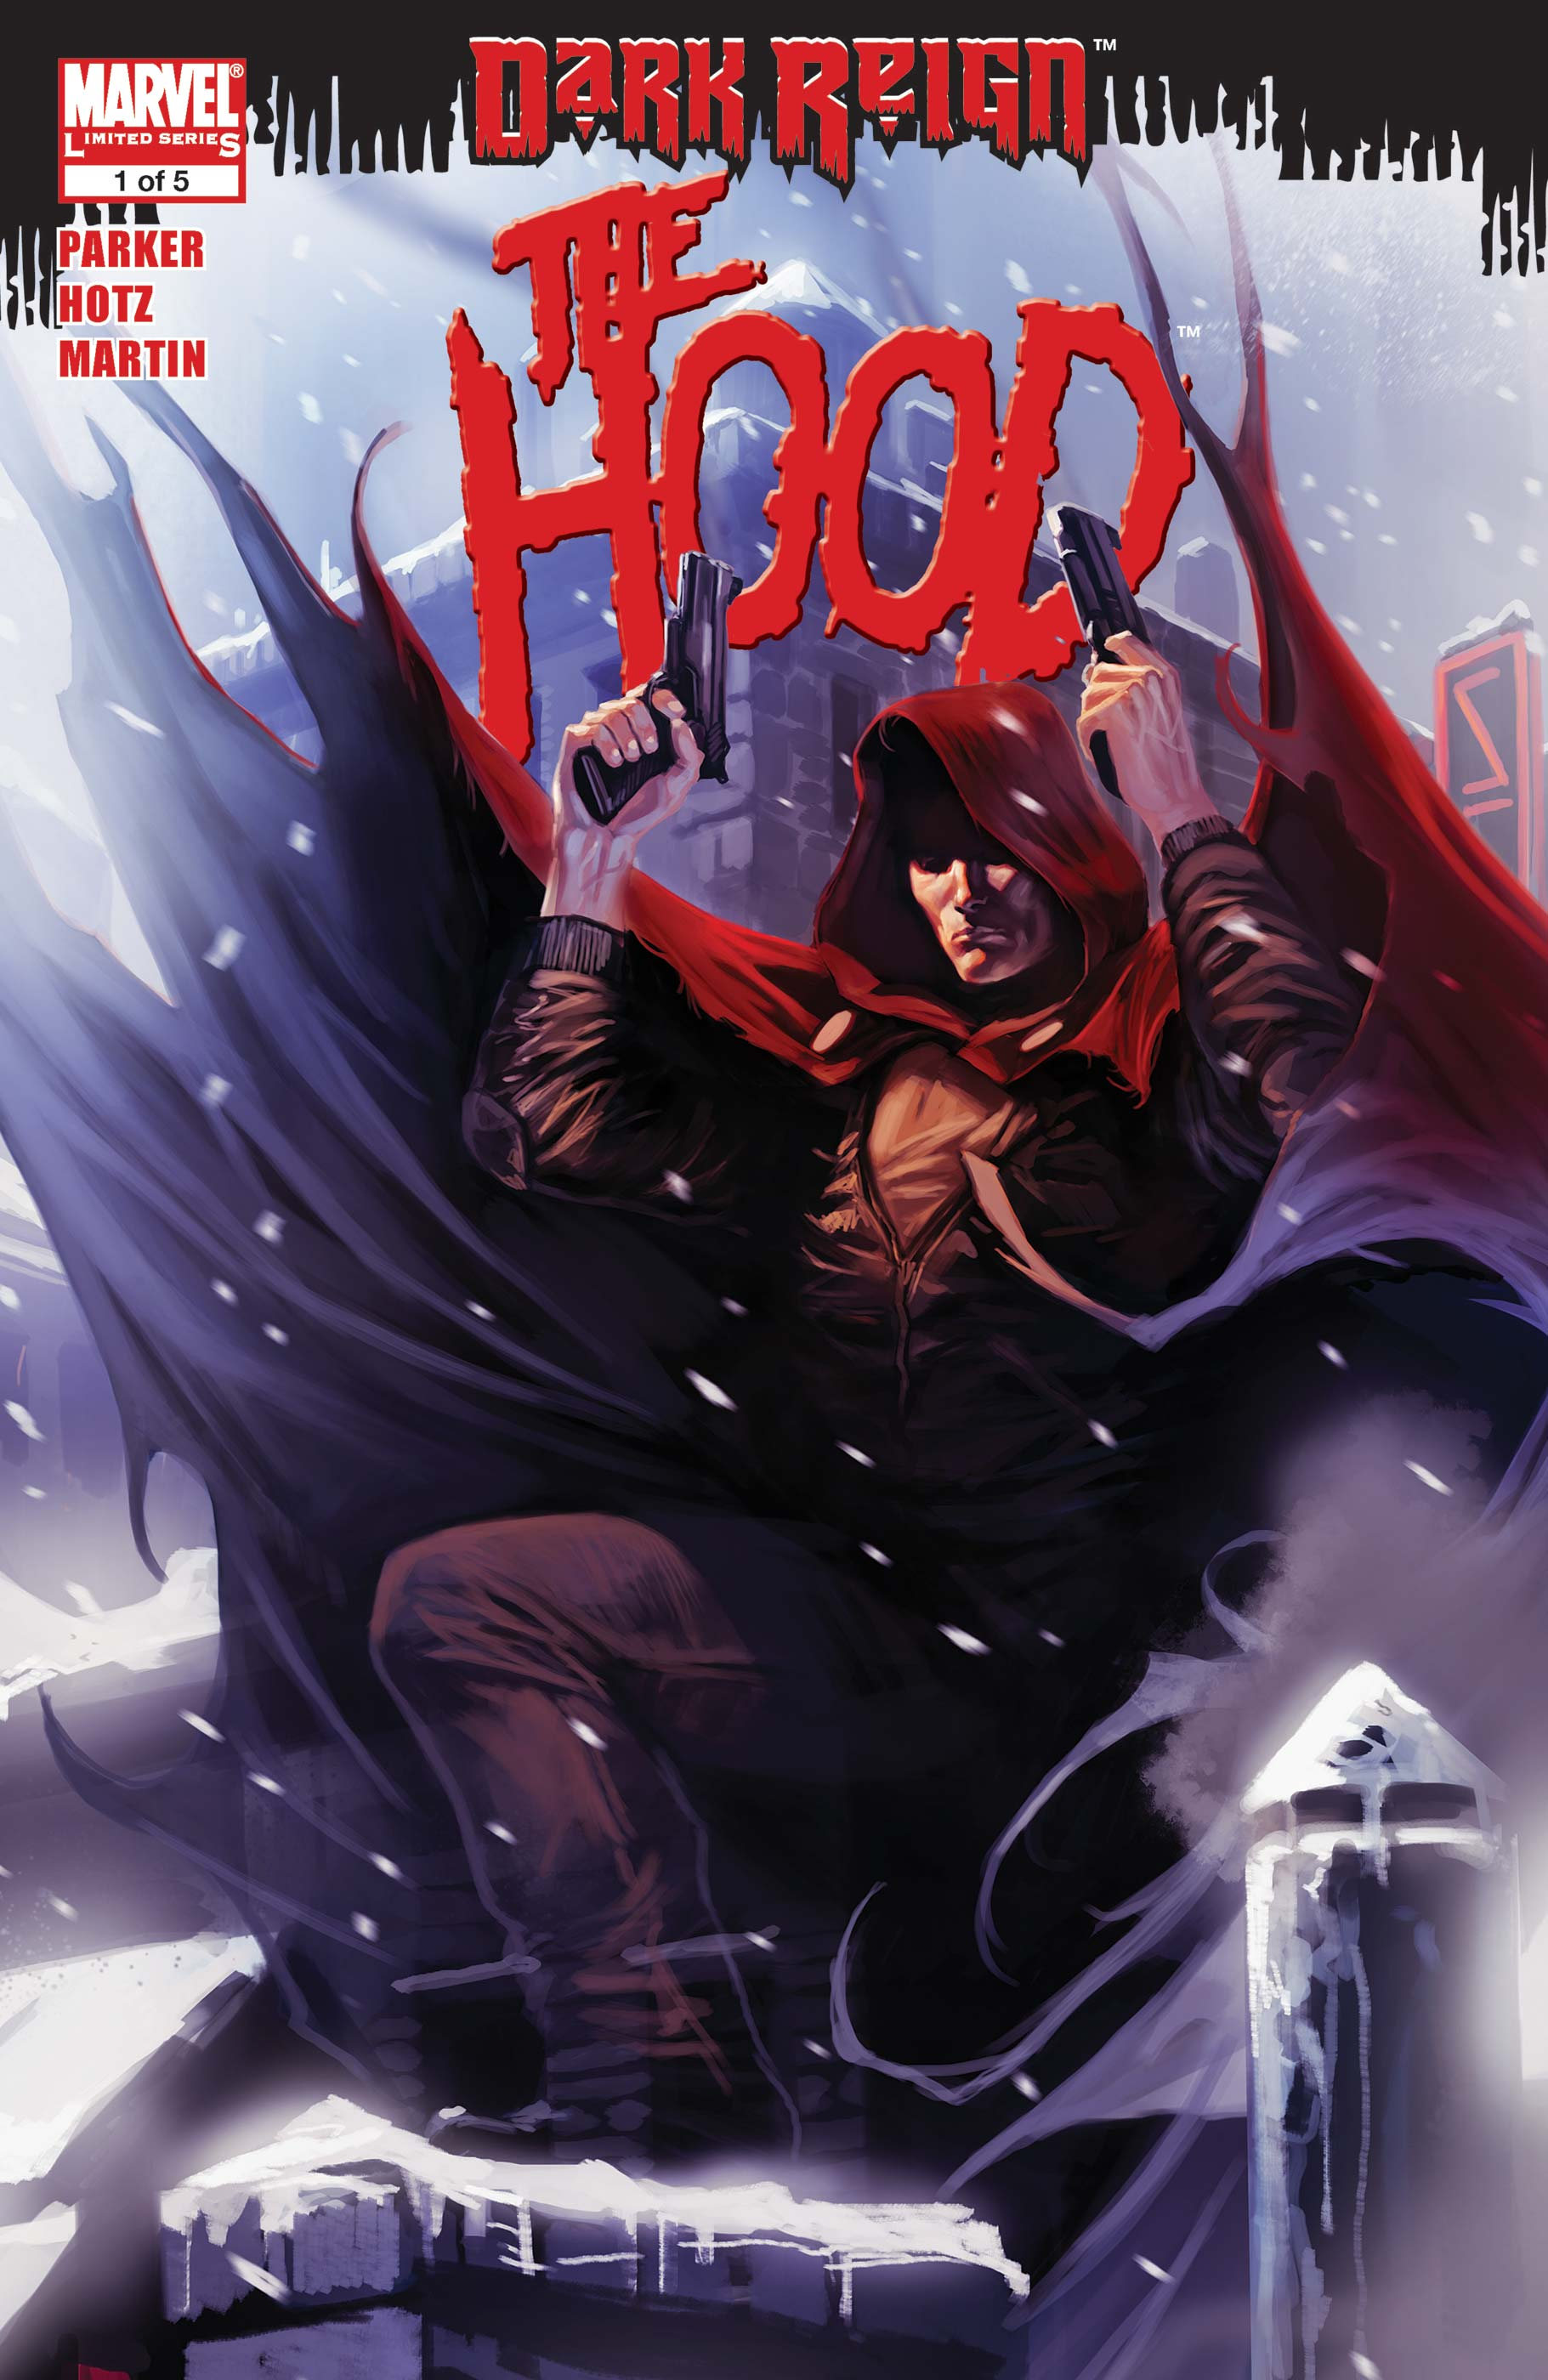 Dark Reign: The Hood (2009) #1